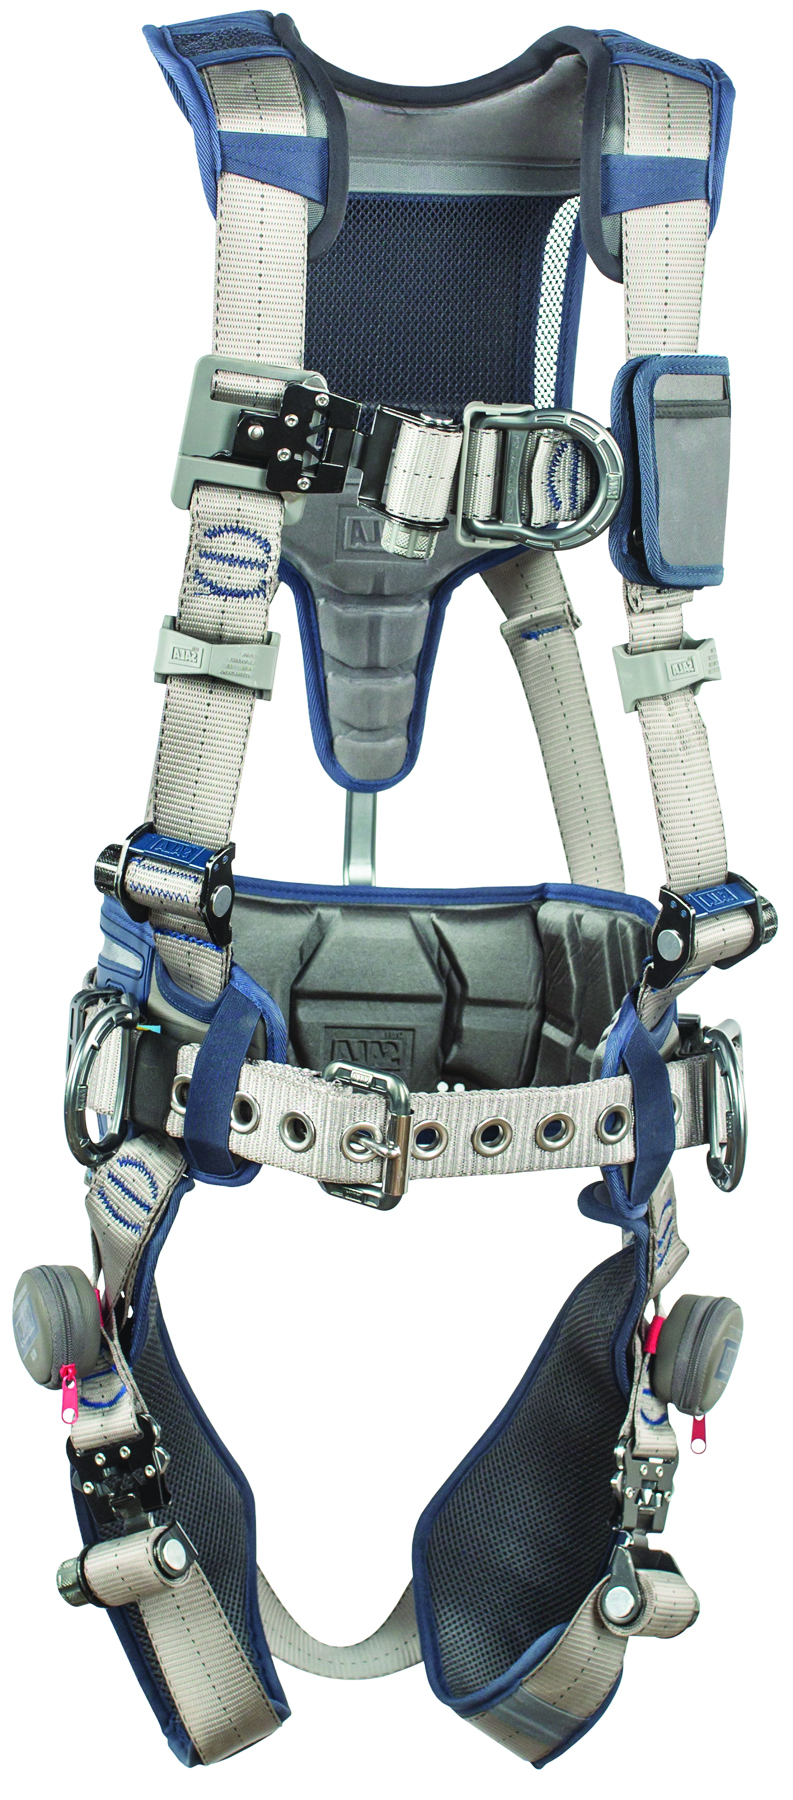 1112542 - ExoFit STRATA™ Construction Style Positioning/Climbing Harnesses-Construction Style Positioning/Climbing Harnesses-Blue and Gray, Size Large----UOM: 1/EA